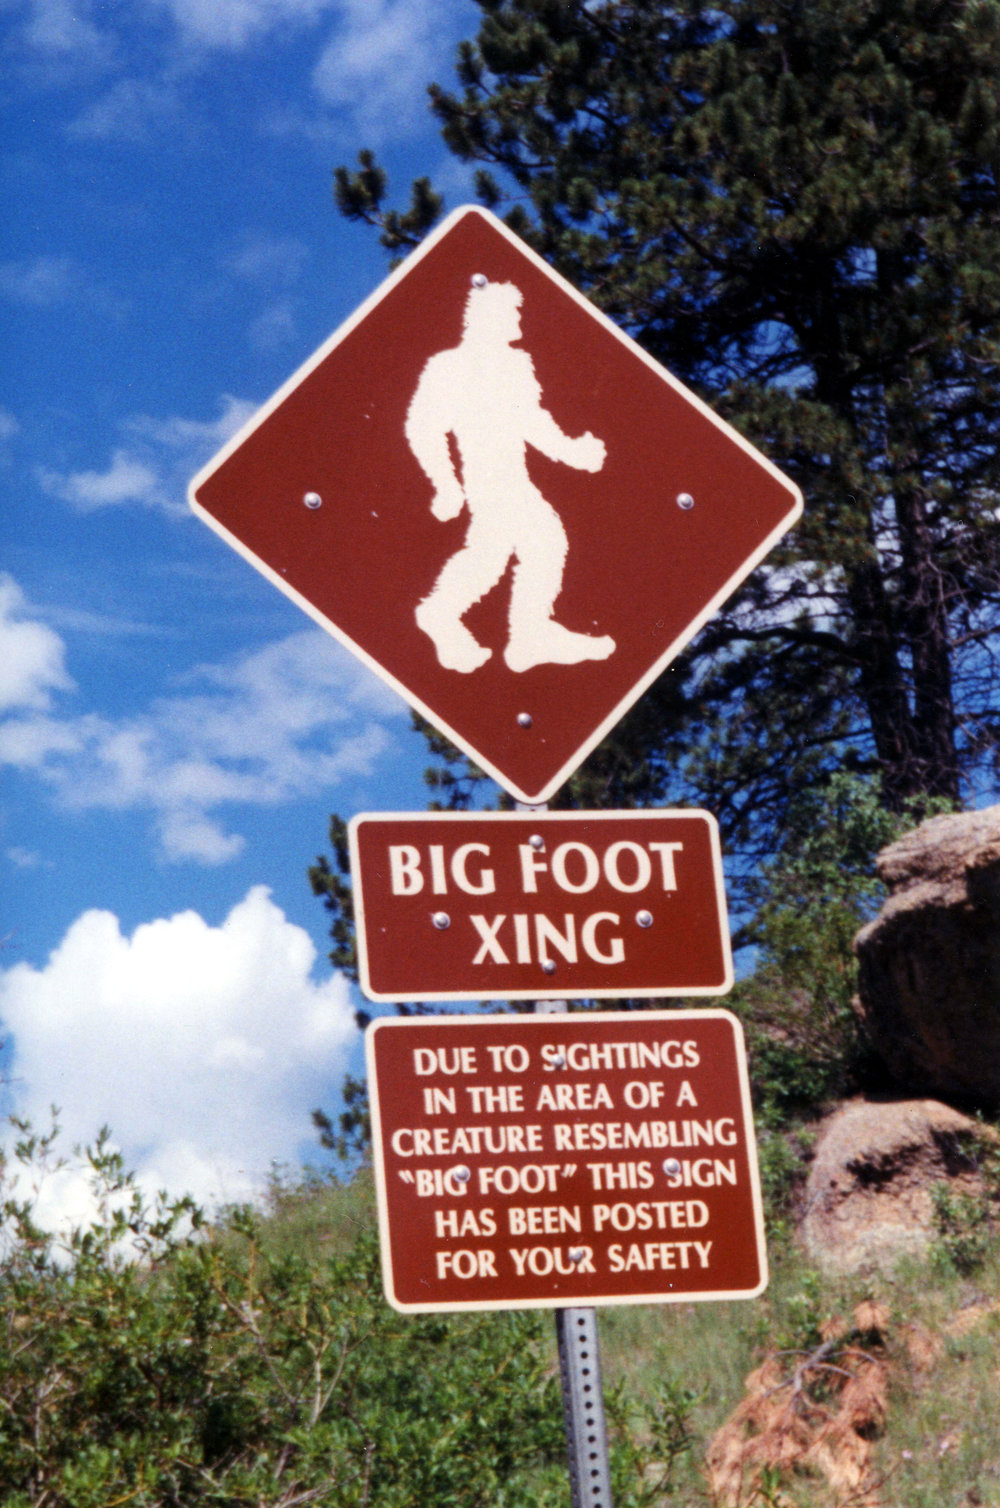 People have been looking for Bigfoot all over the world, but it seems he's been busy crossing this road the whole time. ( Allen Watkin /Flickr, Creative Commons)